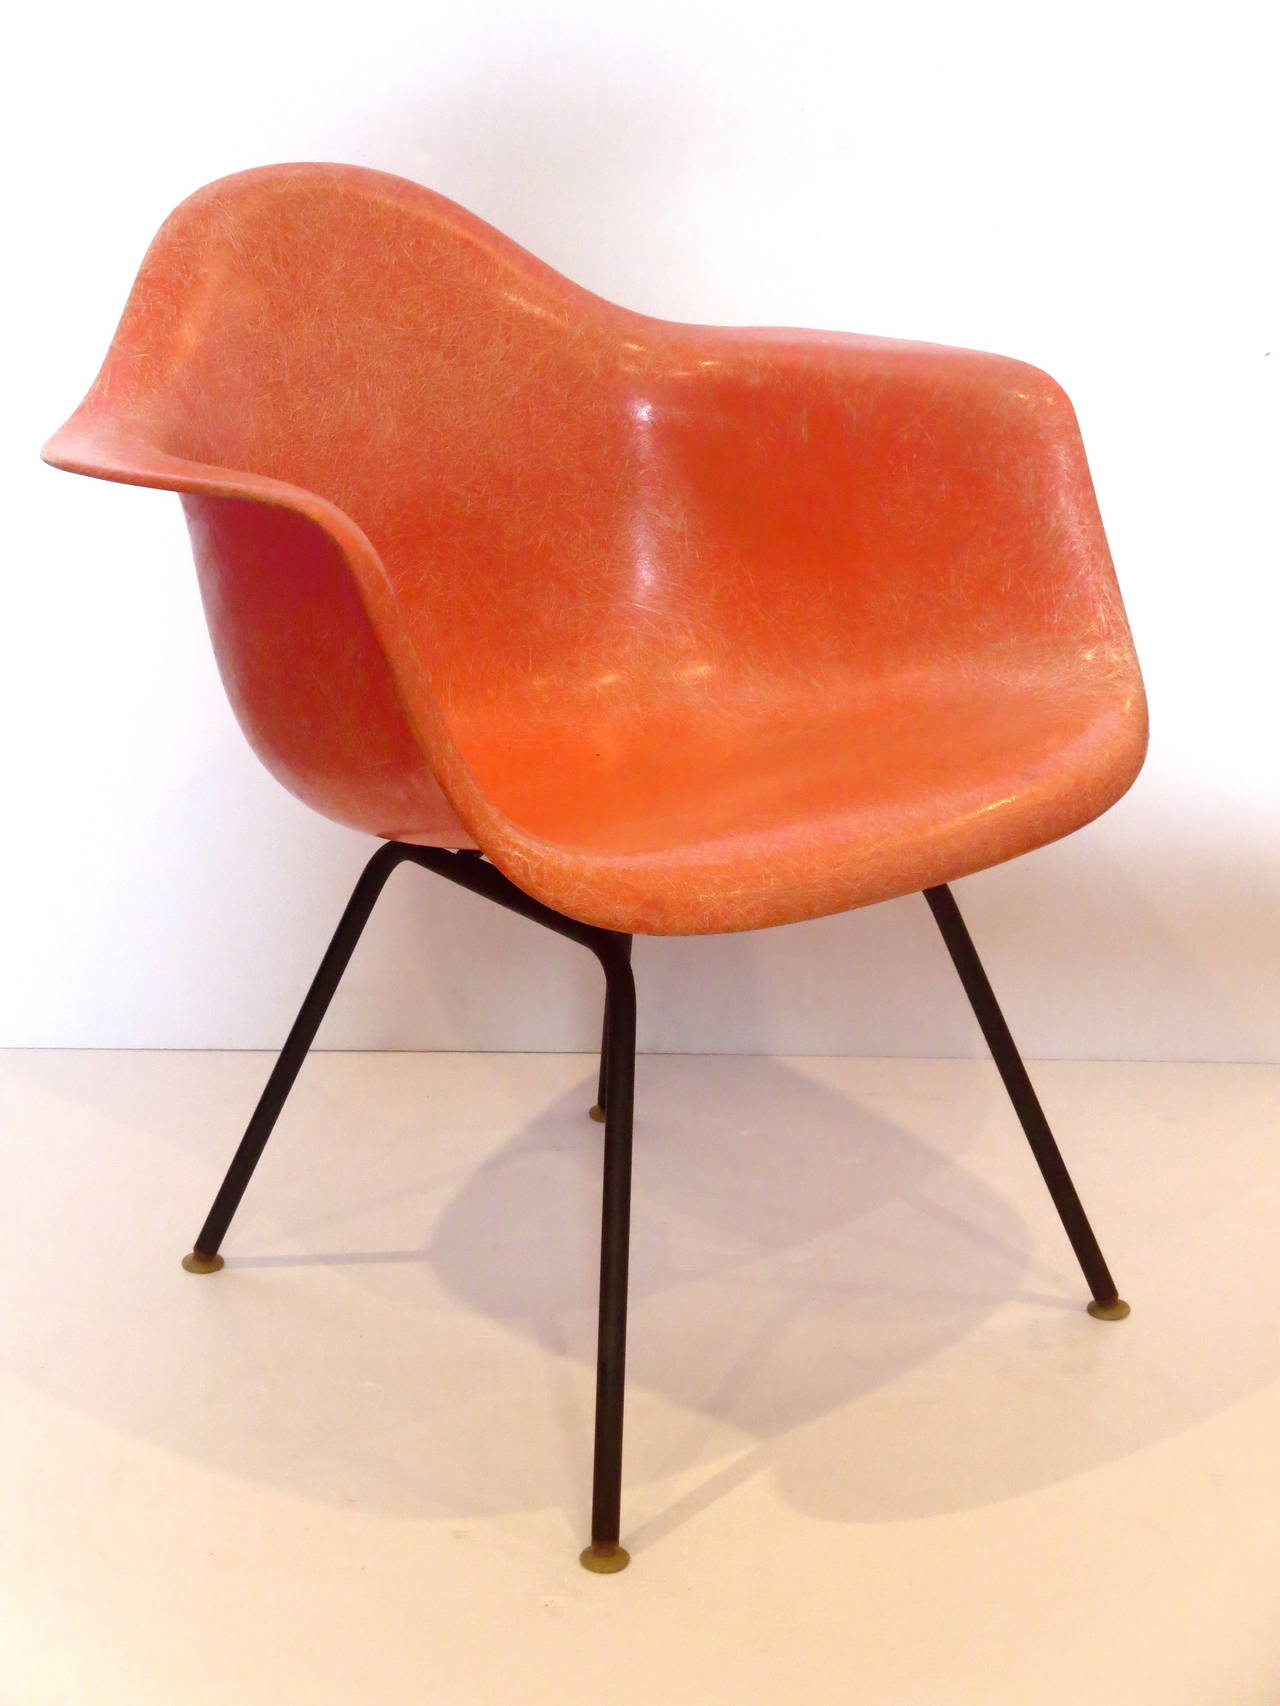 1950s american modern eames fiberglass arm shell chair for. Black Bedroom Furniture Sets. Home Design Ideas